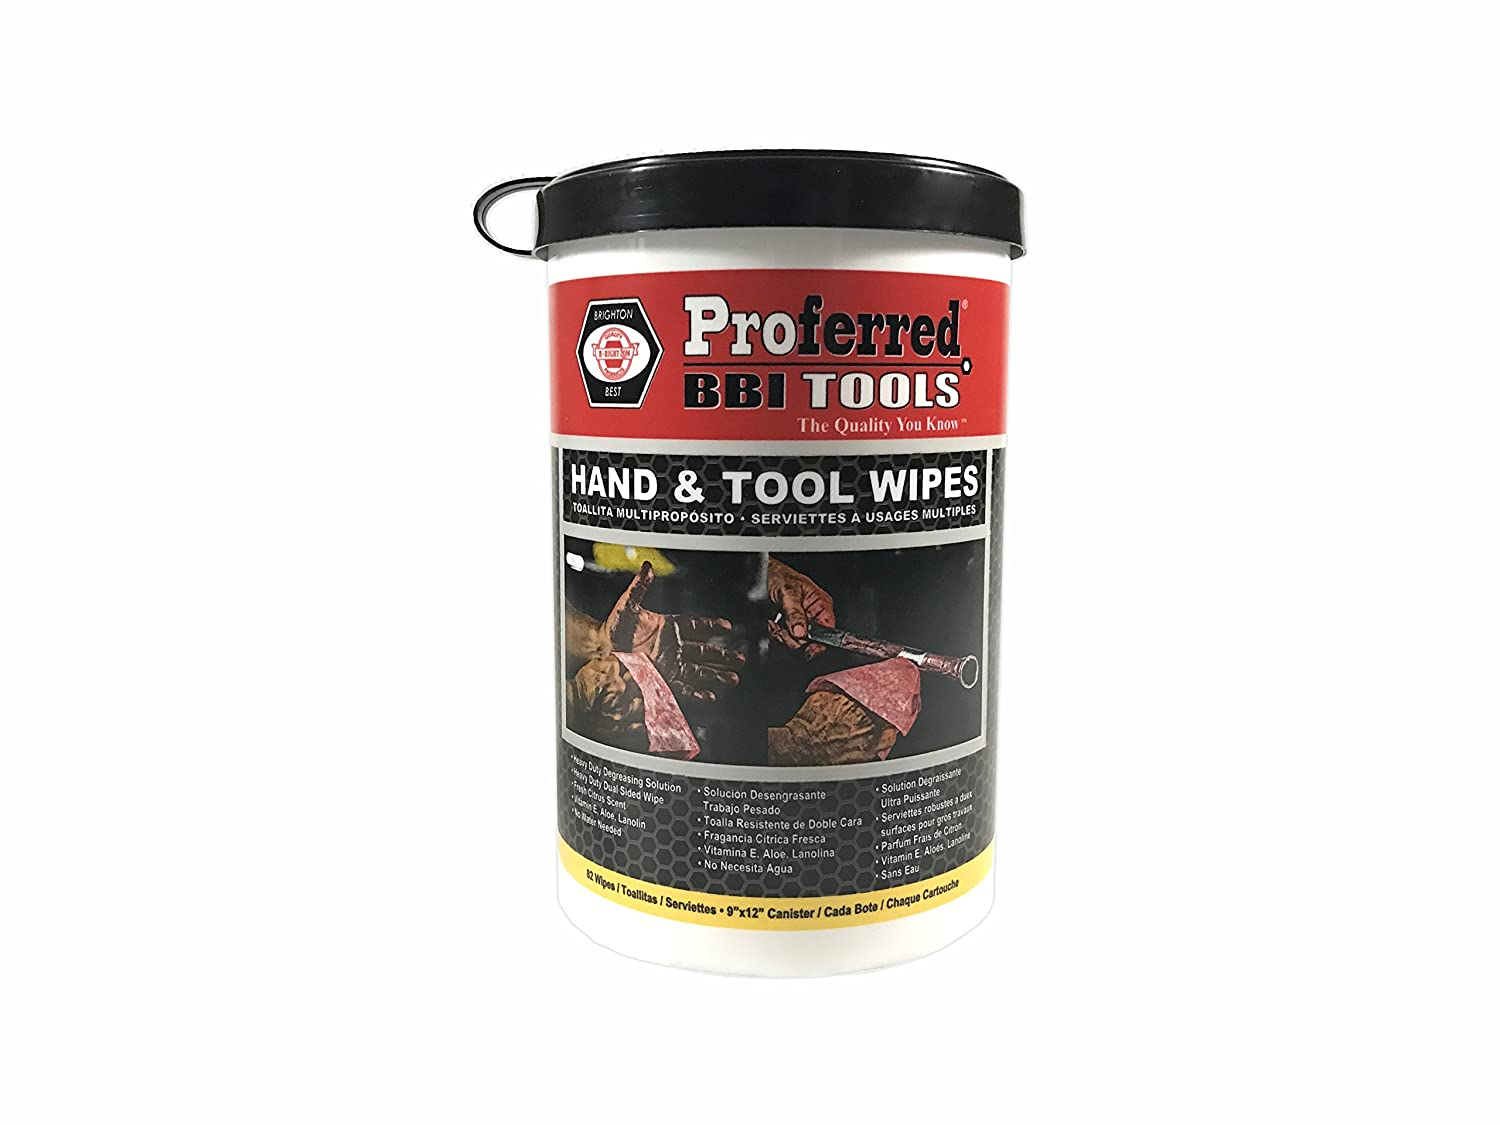 Proferred T99001 Hand and Tool Wipes Canister: Amazon.com: Industrial & Scientific